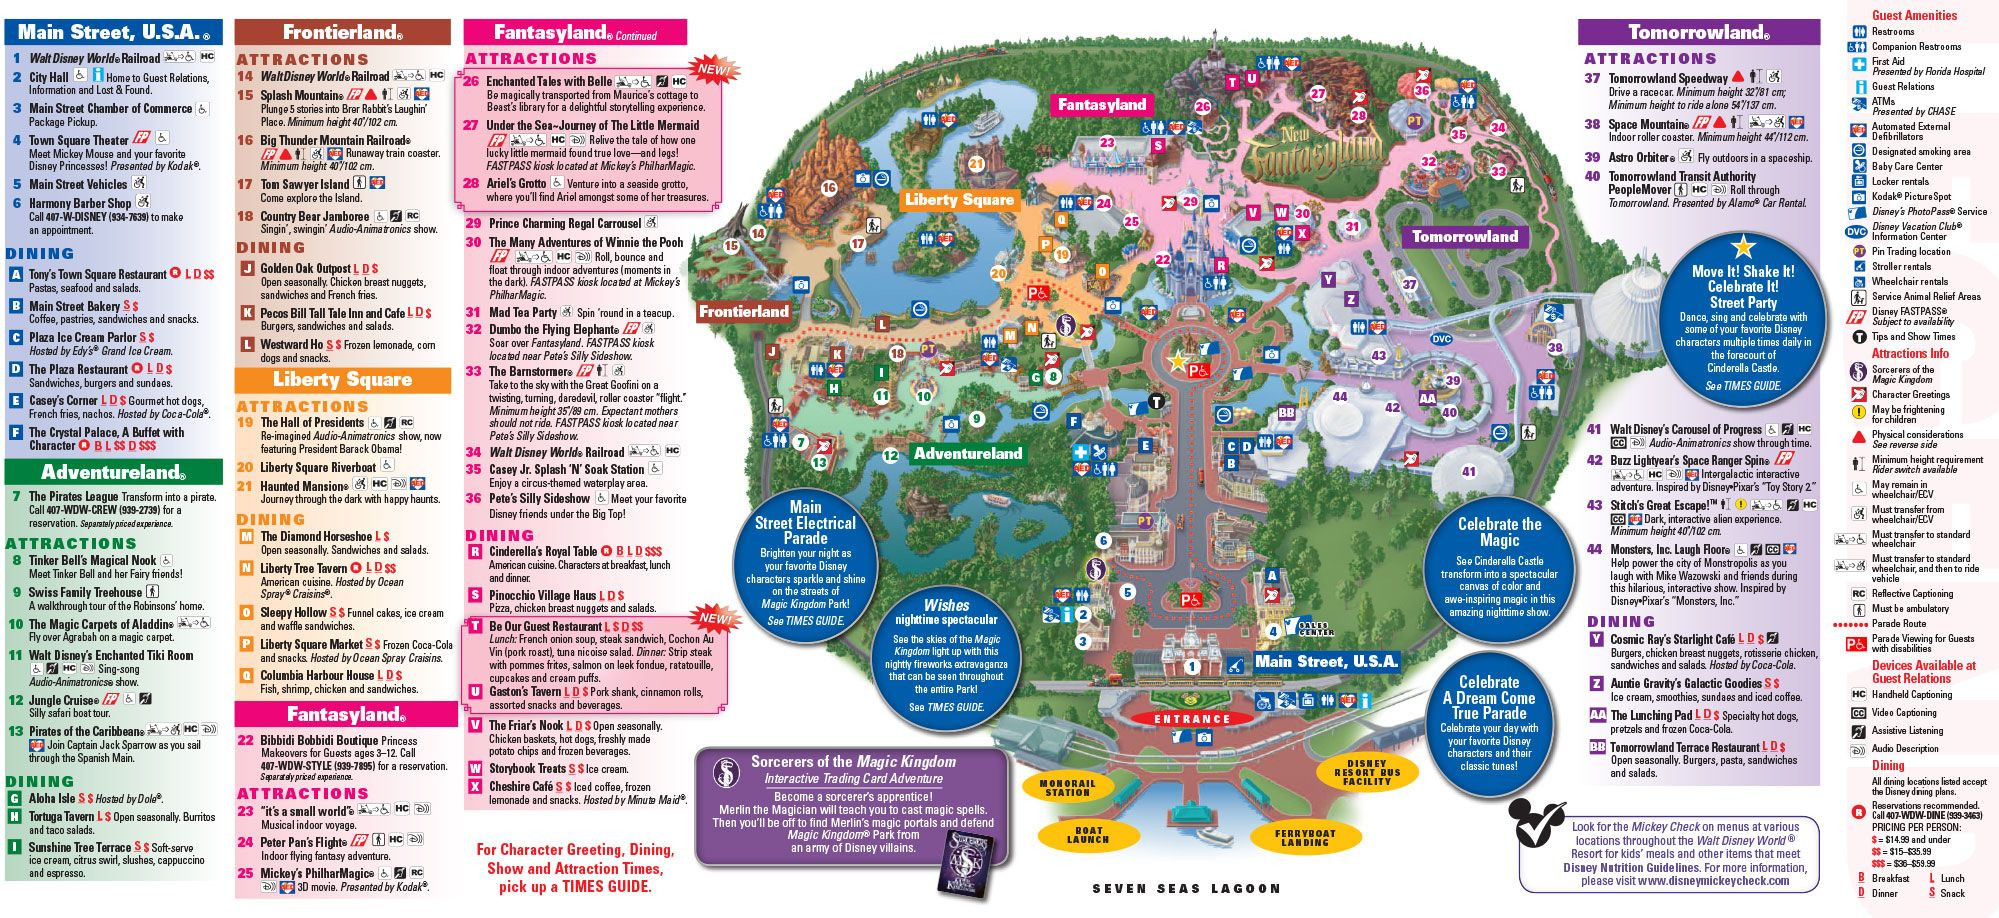 Printable Map Magic Kingdom 2018 Lovely Town Square Theater This Is The Very First Building To The Far